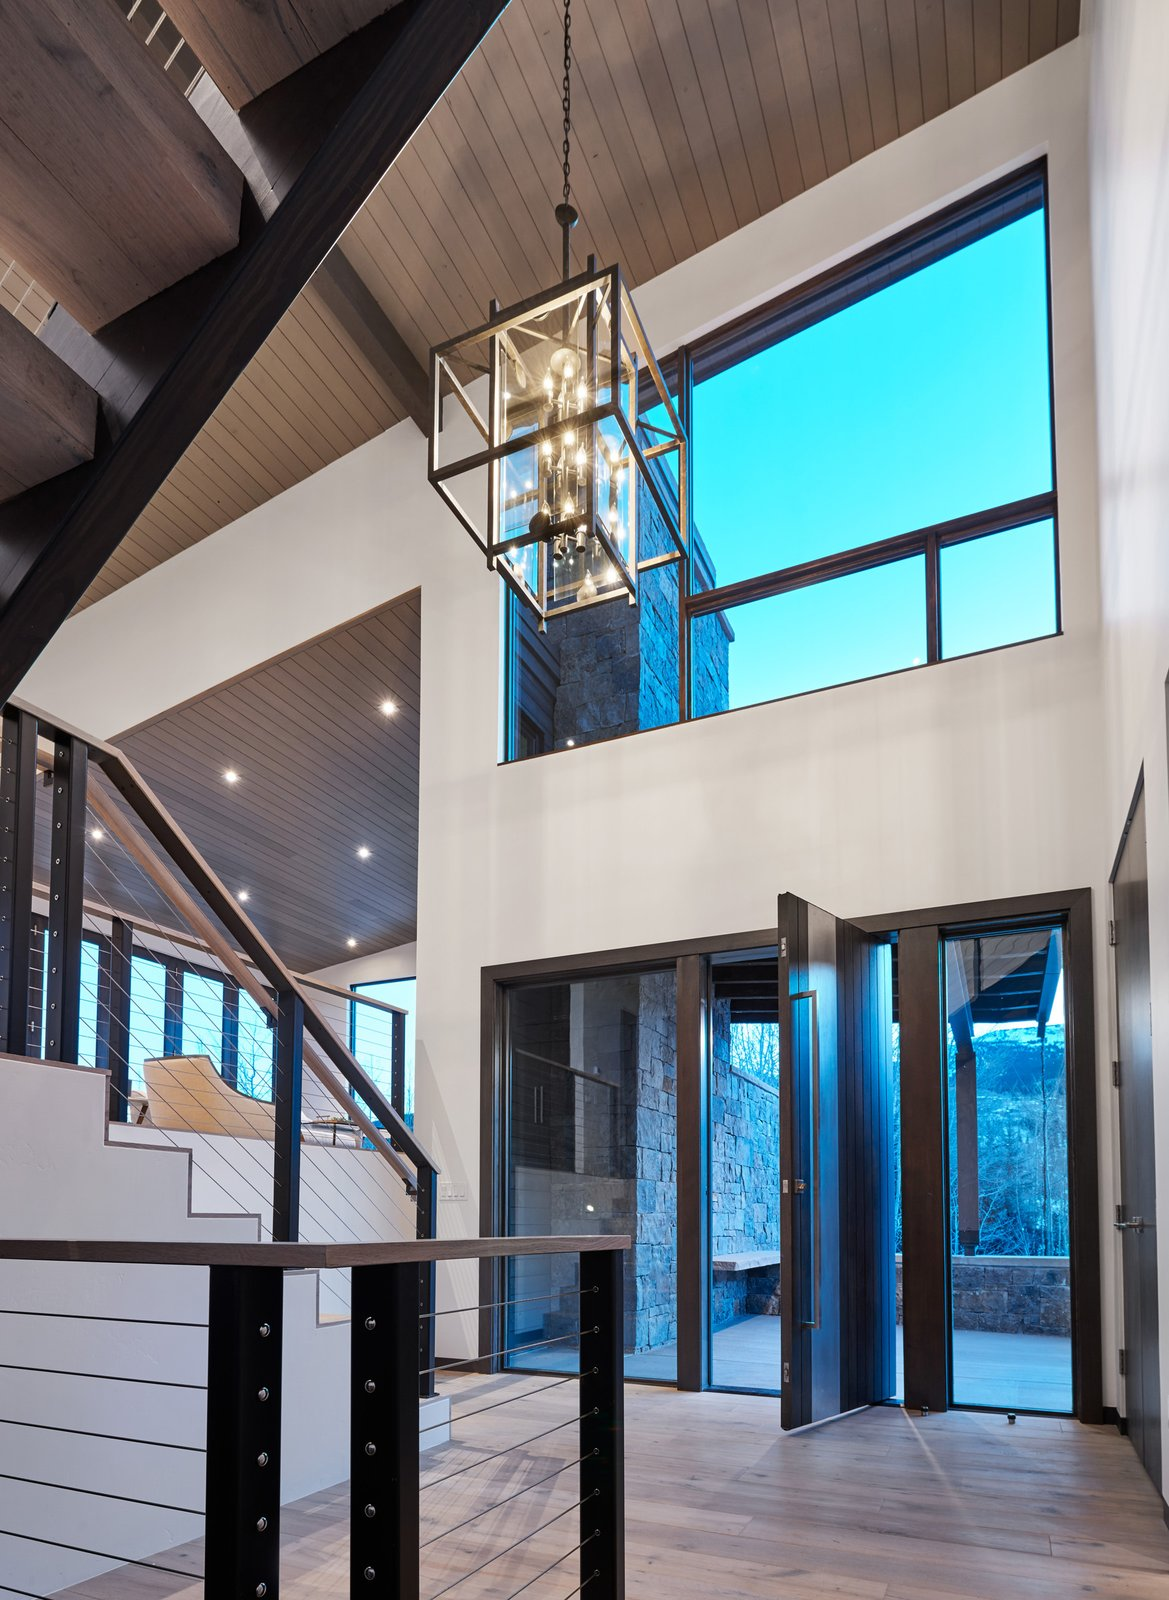 Staircase, Wood Tread, and Cable Railing The floor plan pays homage to the familiar split-level layout, utilizing the spatial and functional benefits, but with a luxurious and contemporary spin.   Terrace Drive by KA DesignWorks